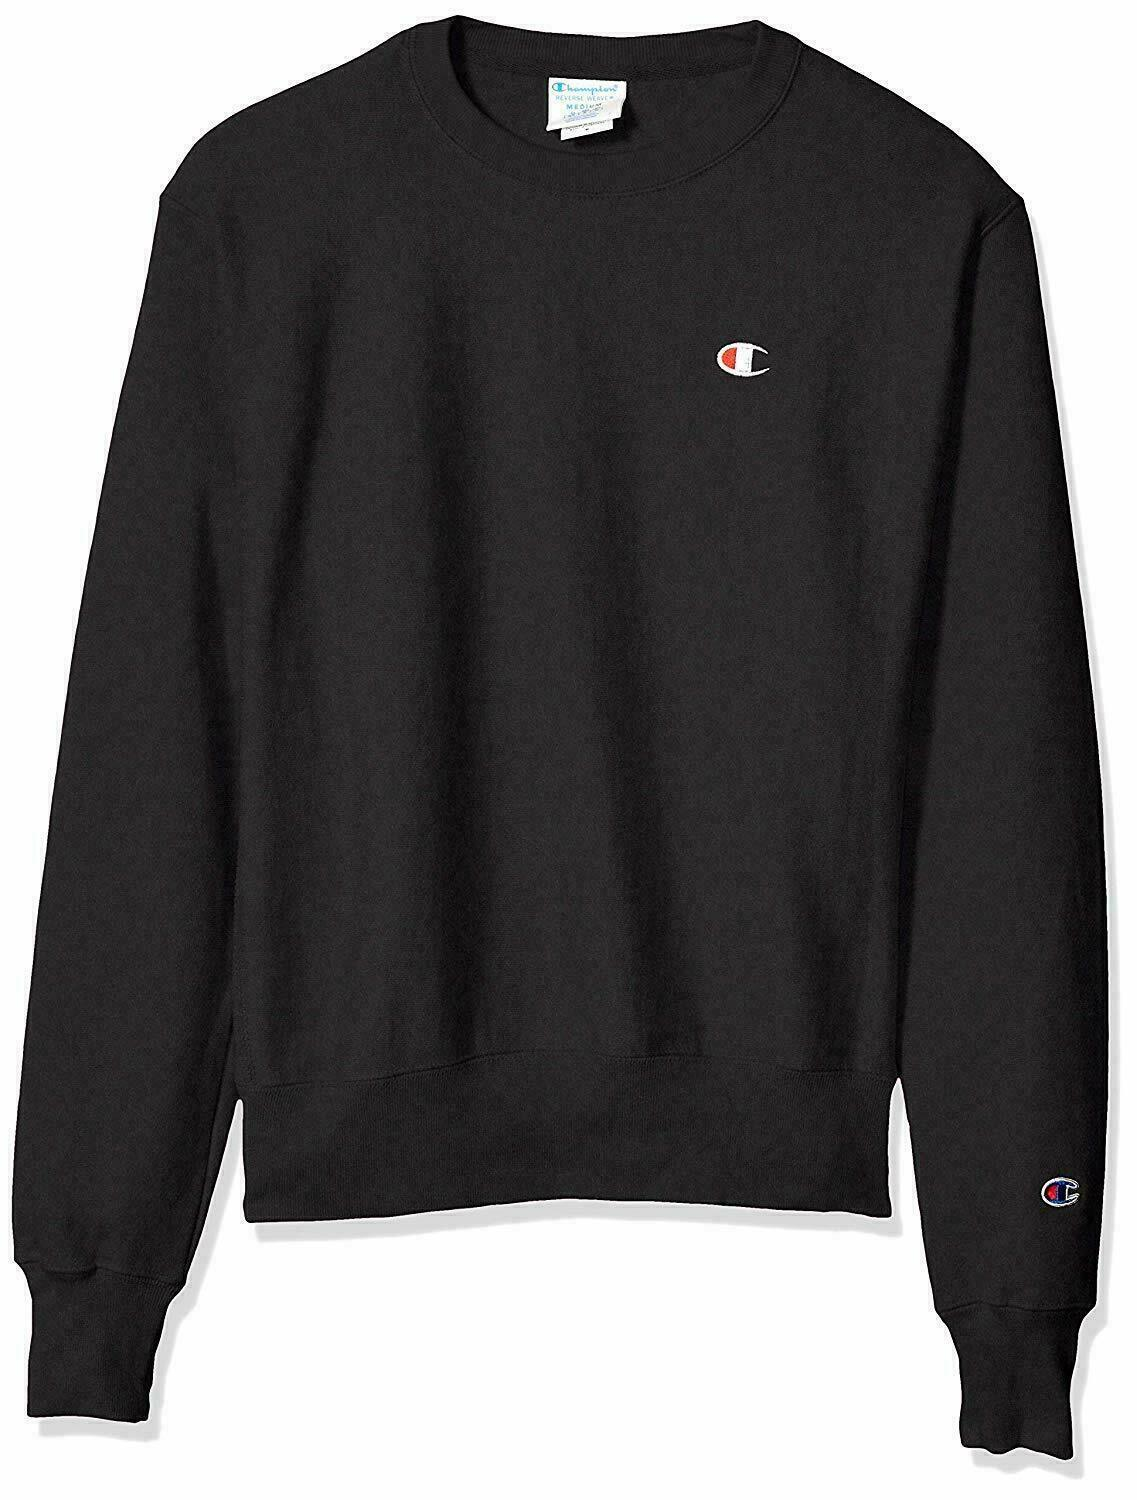 Champion Life Reverse Weave Sweatshirt Black Men's Medium Crew Neck Long Sleeve image 8